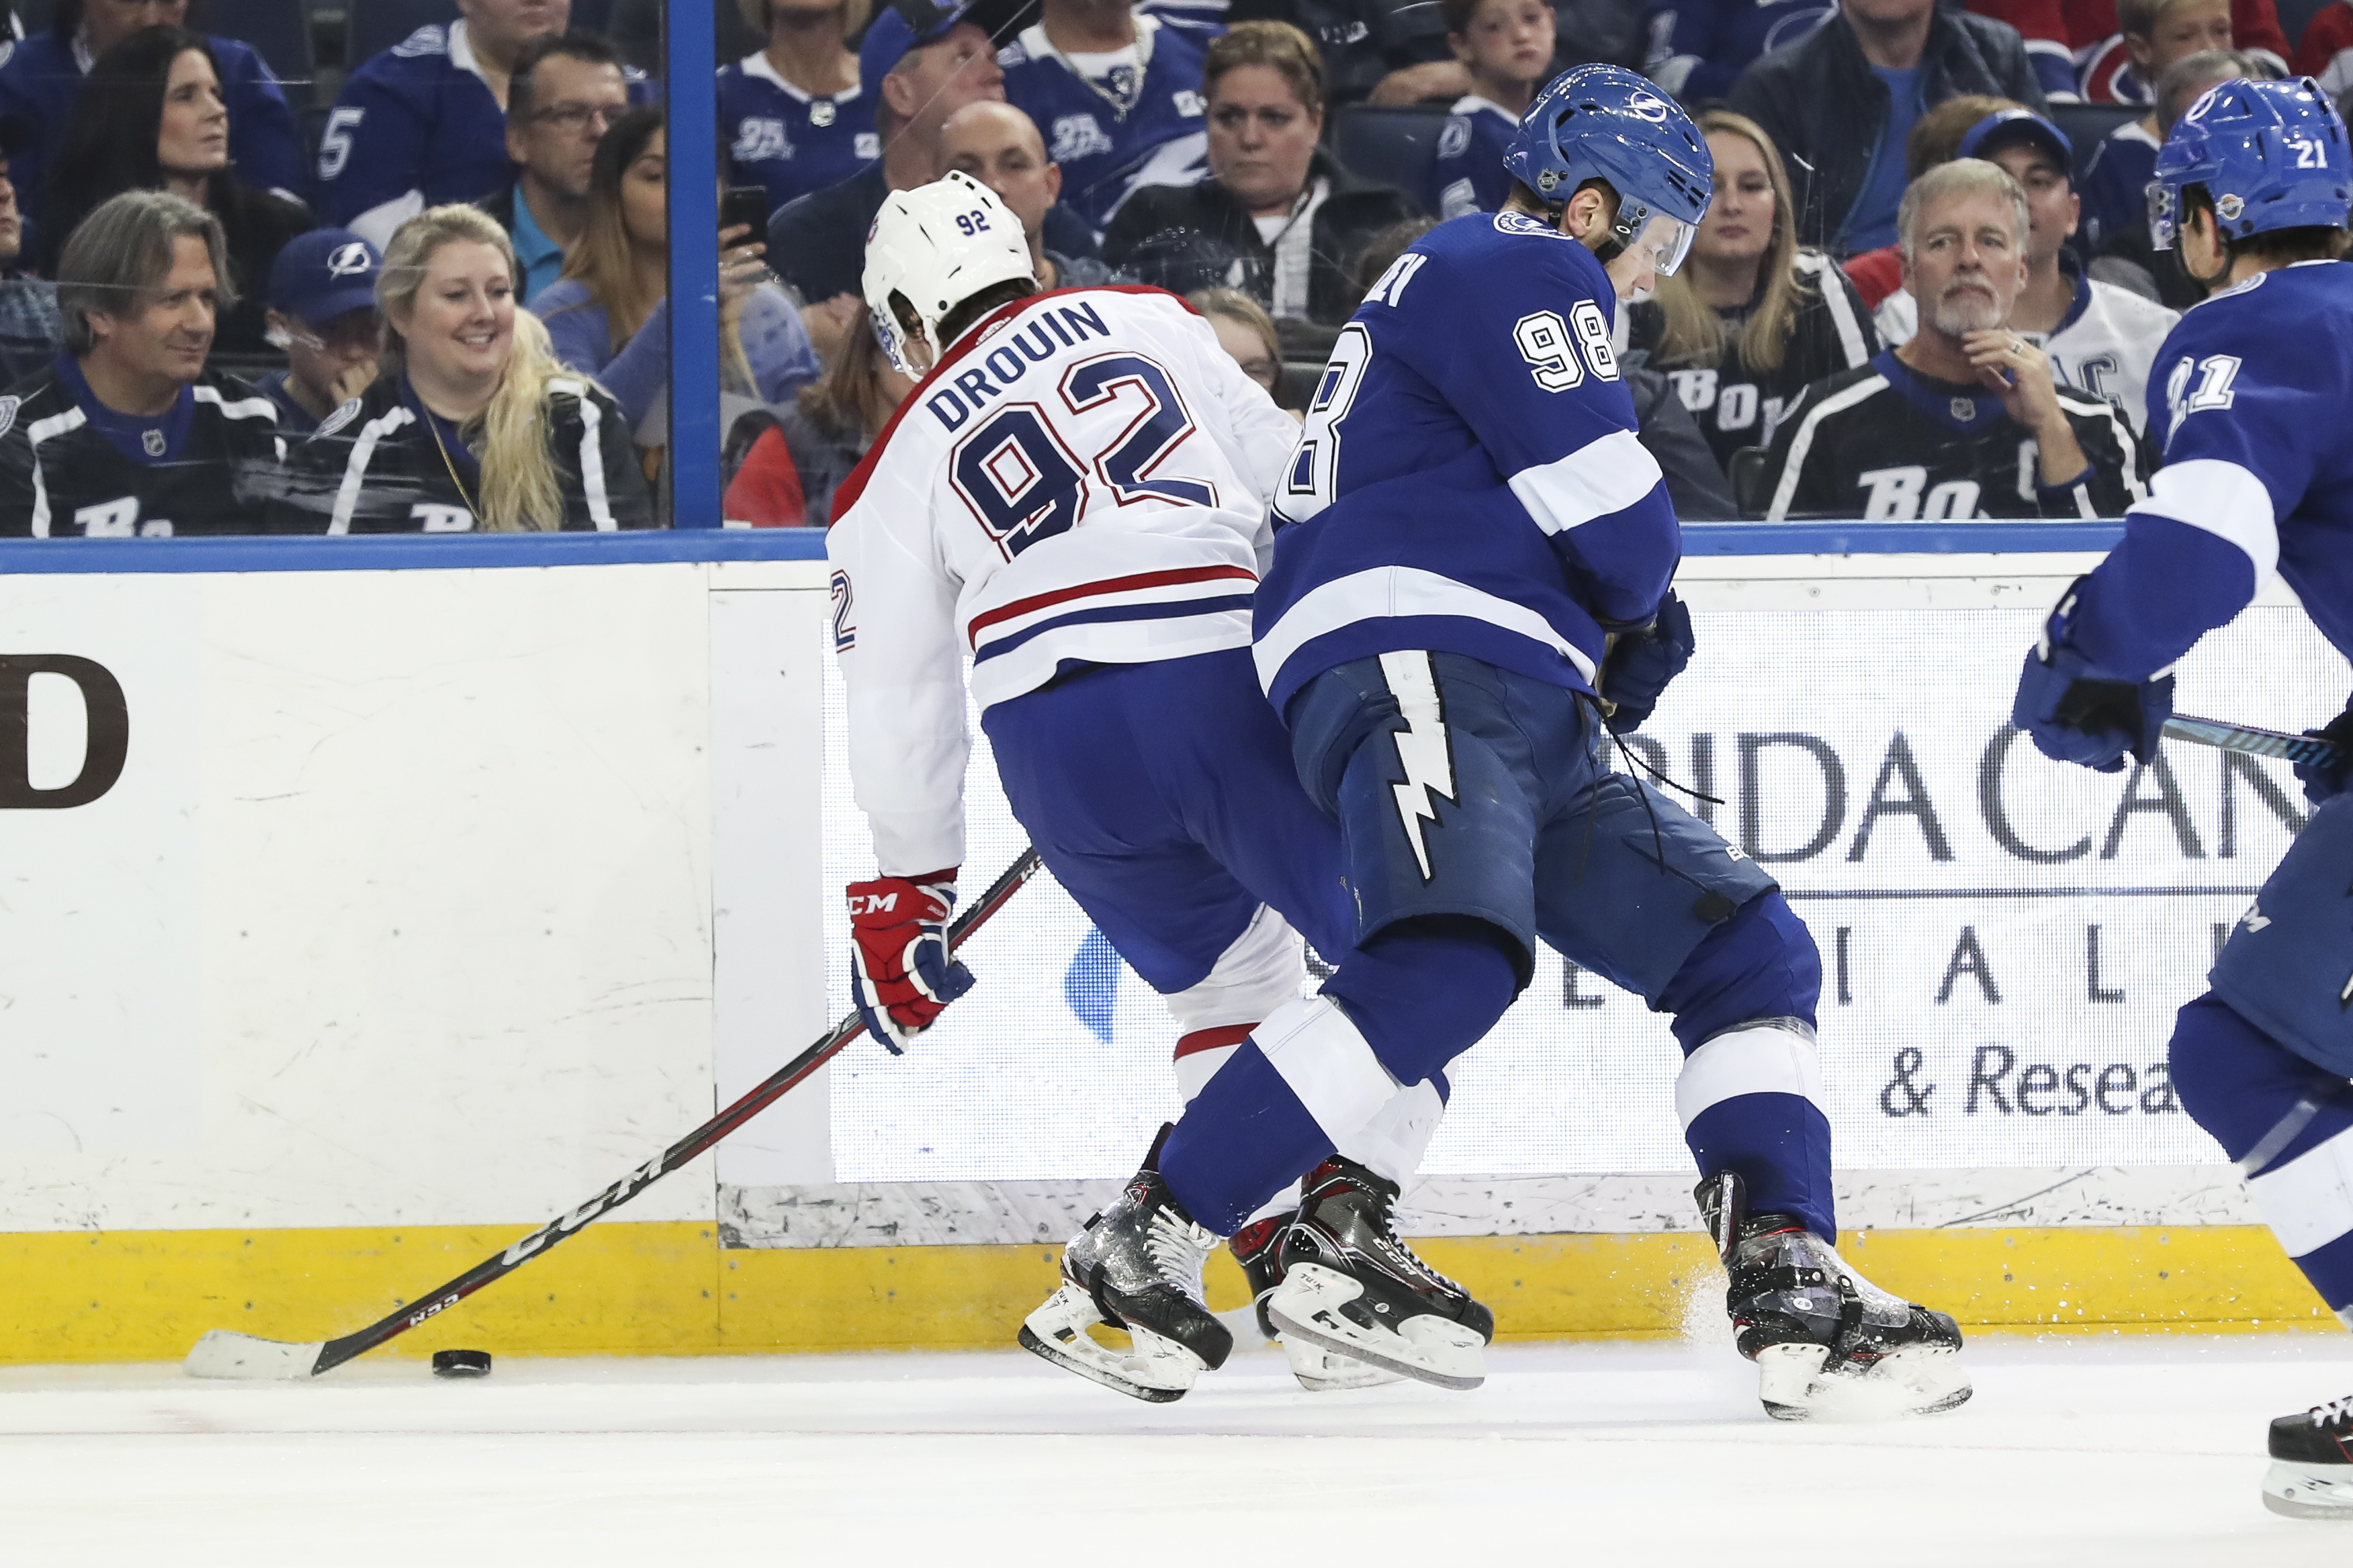 NHL: DEC 28 Canadiens at Lightning